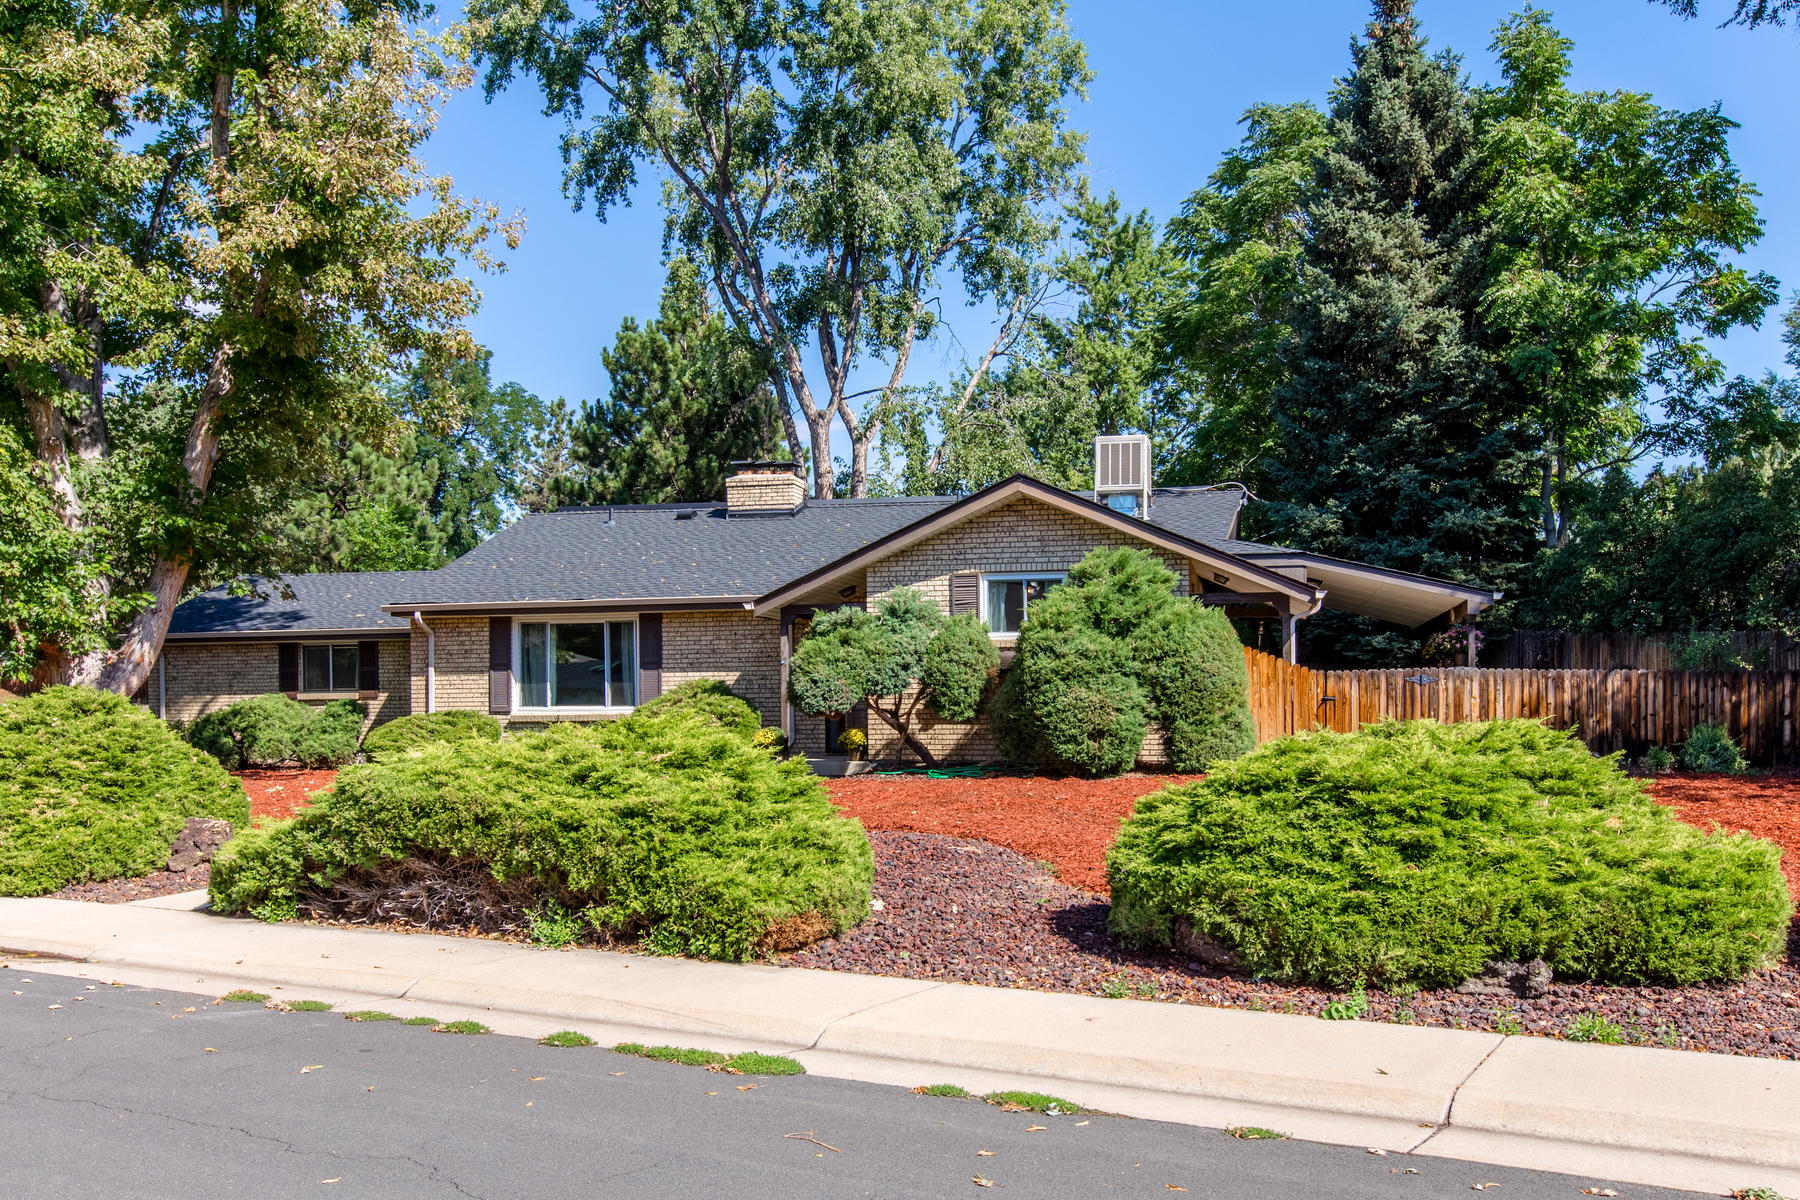 Single Family Homes for Active at Fantastic Opportunity to Own a Beautiful Home in the Heart of Wheat Ridge 7105 W 34th Place Wheat Ridge, Colorado 80033 United States